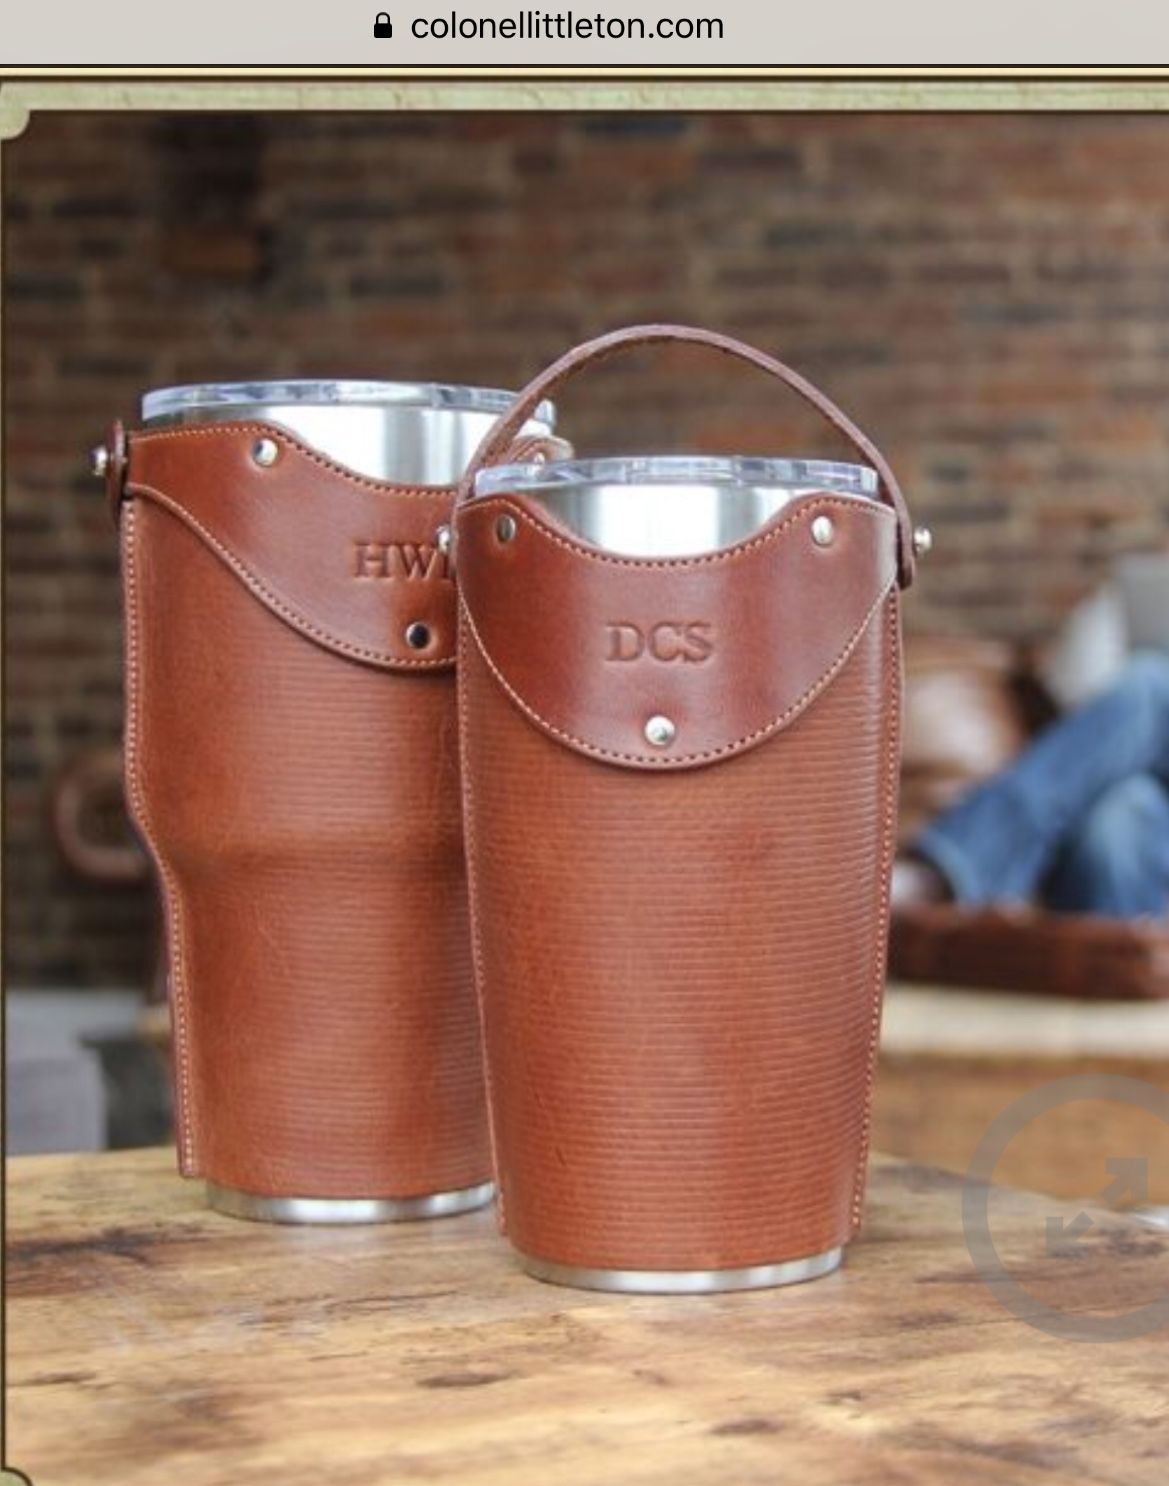 50 yeti cup cover from Colonel Littleton Leather 가죽, 가죽